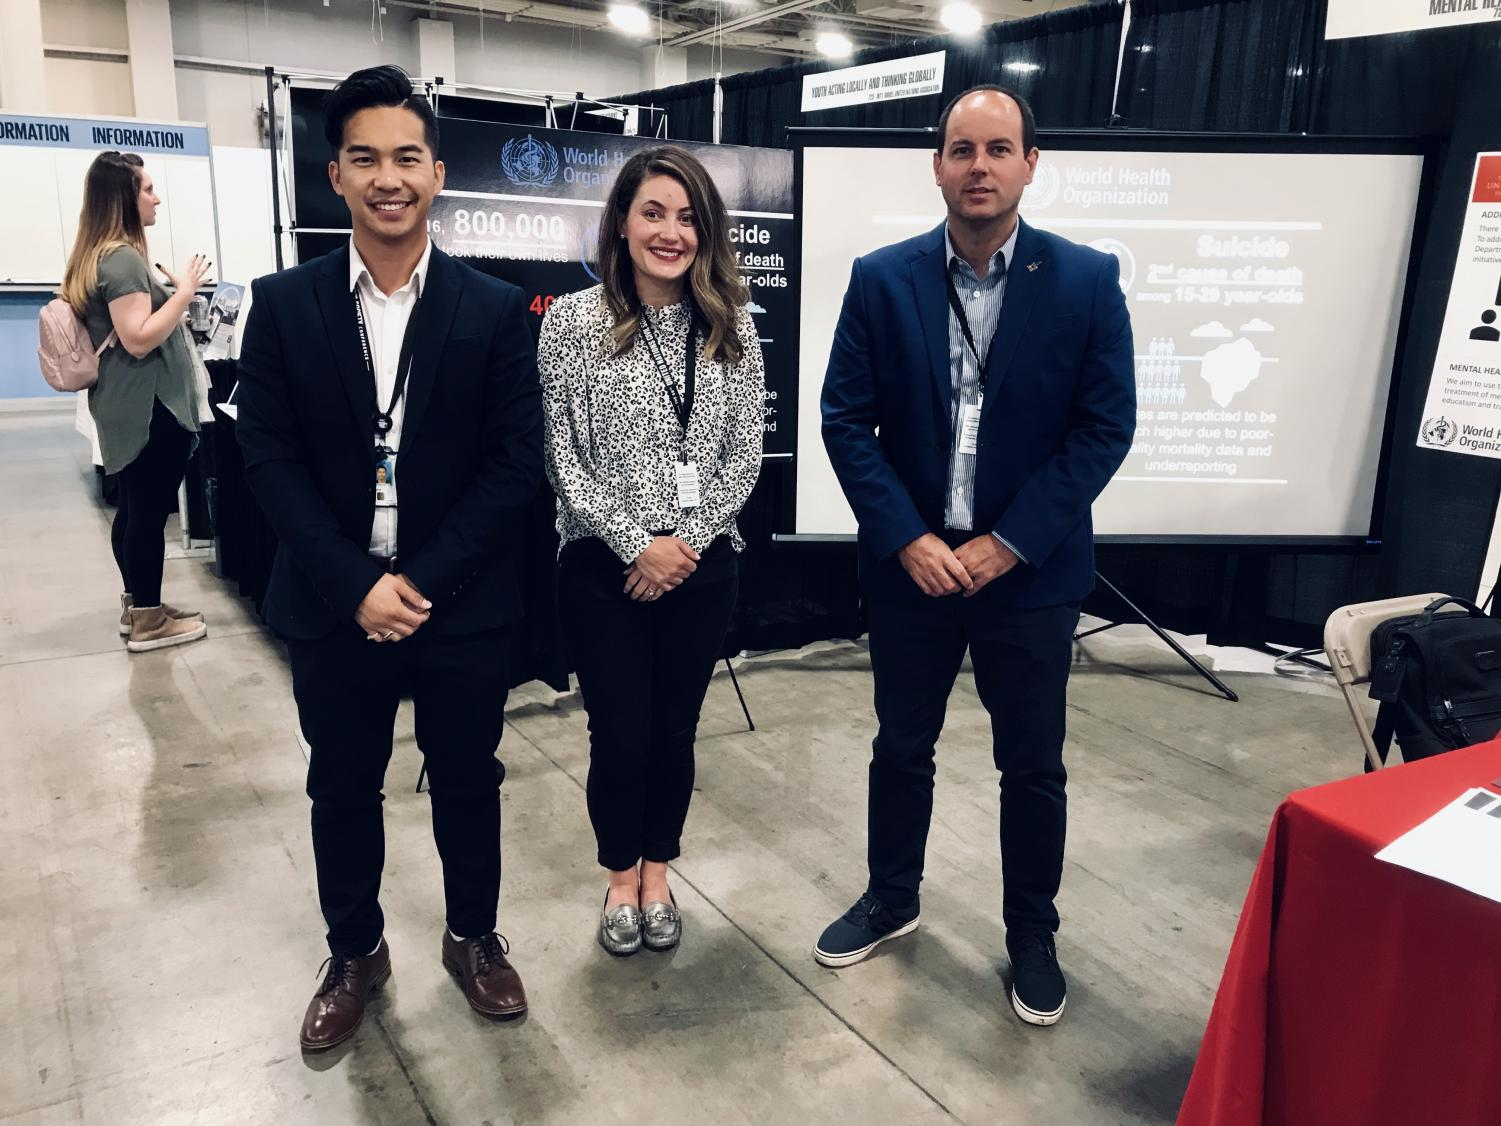 Alexander Au (left) stands with his mentors, mentors Dr. Sarah Mullowney (center) and Dr. Damian Borbolla (right). (Courtesy Alexander Au)